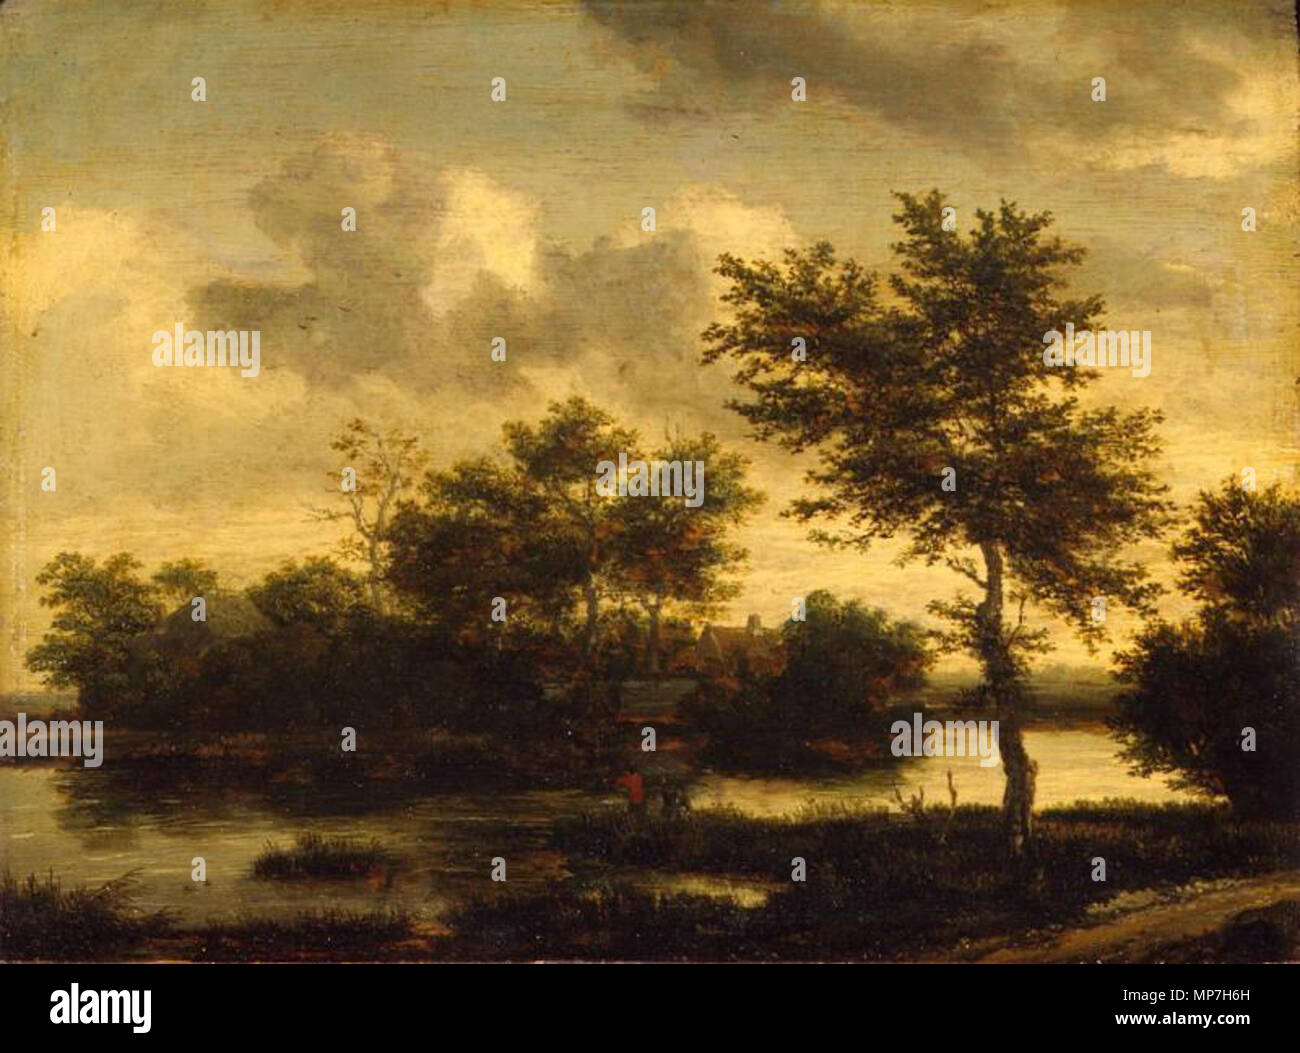 A river landscape with figures. English: River Landscape This object ...